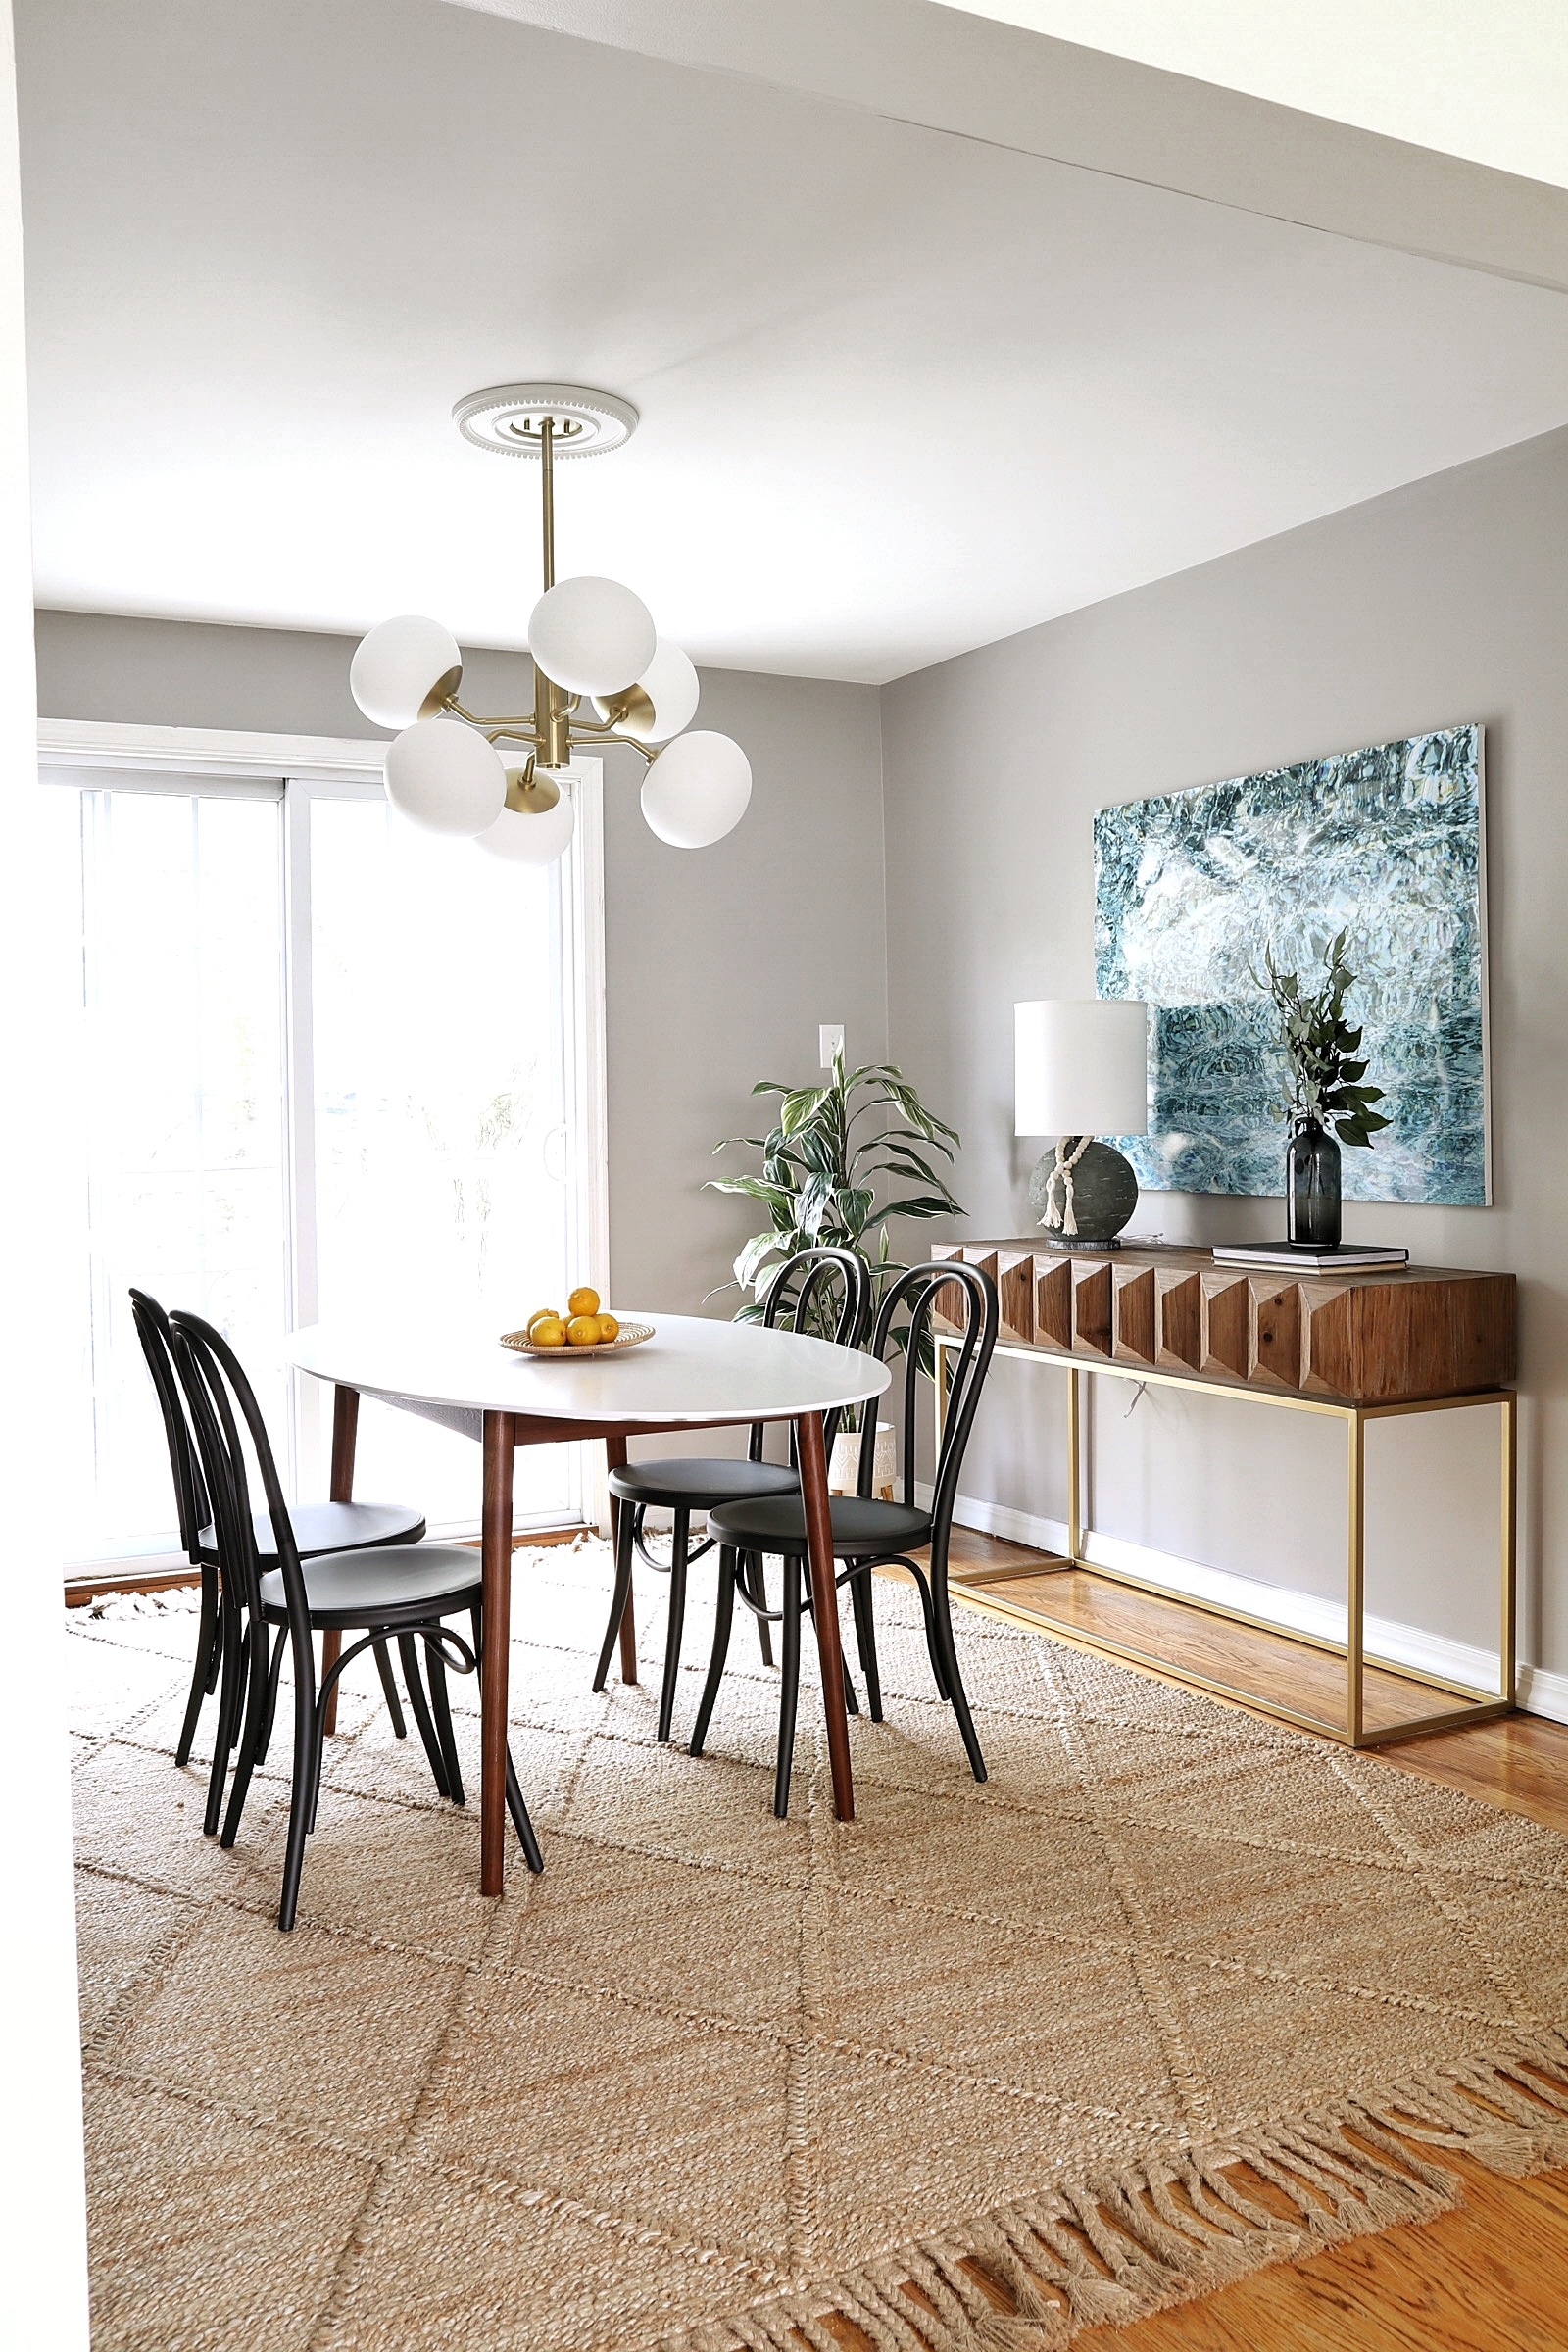 Modern-Dining-Room-Decor.jpg